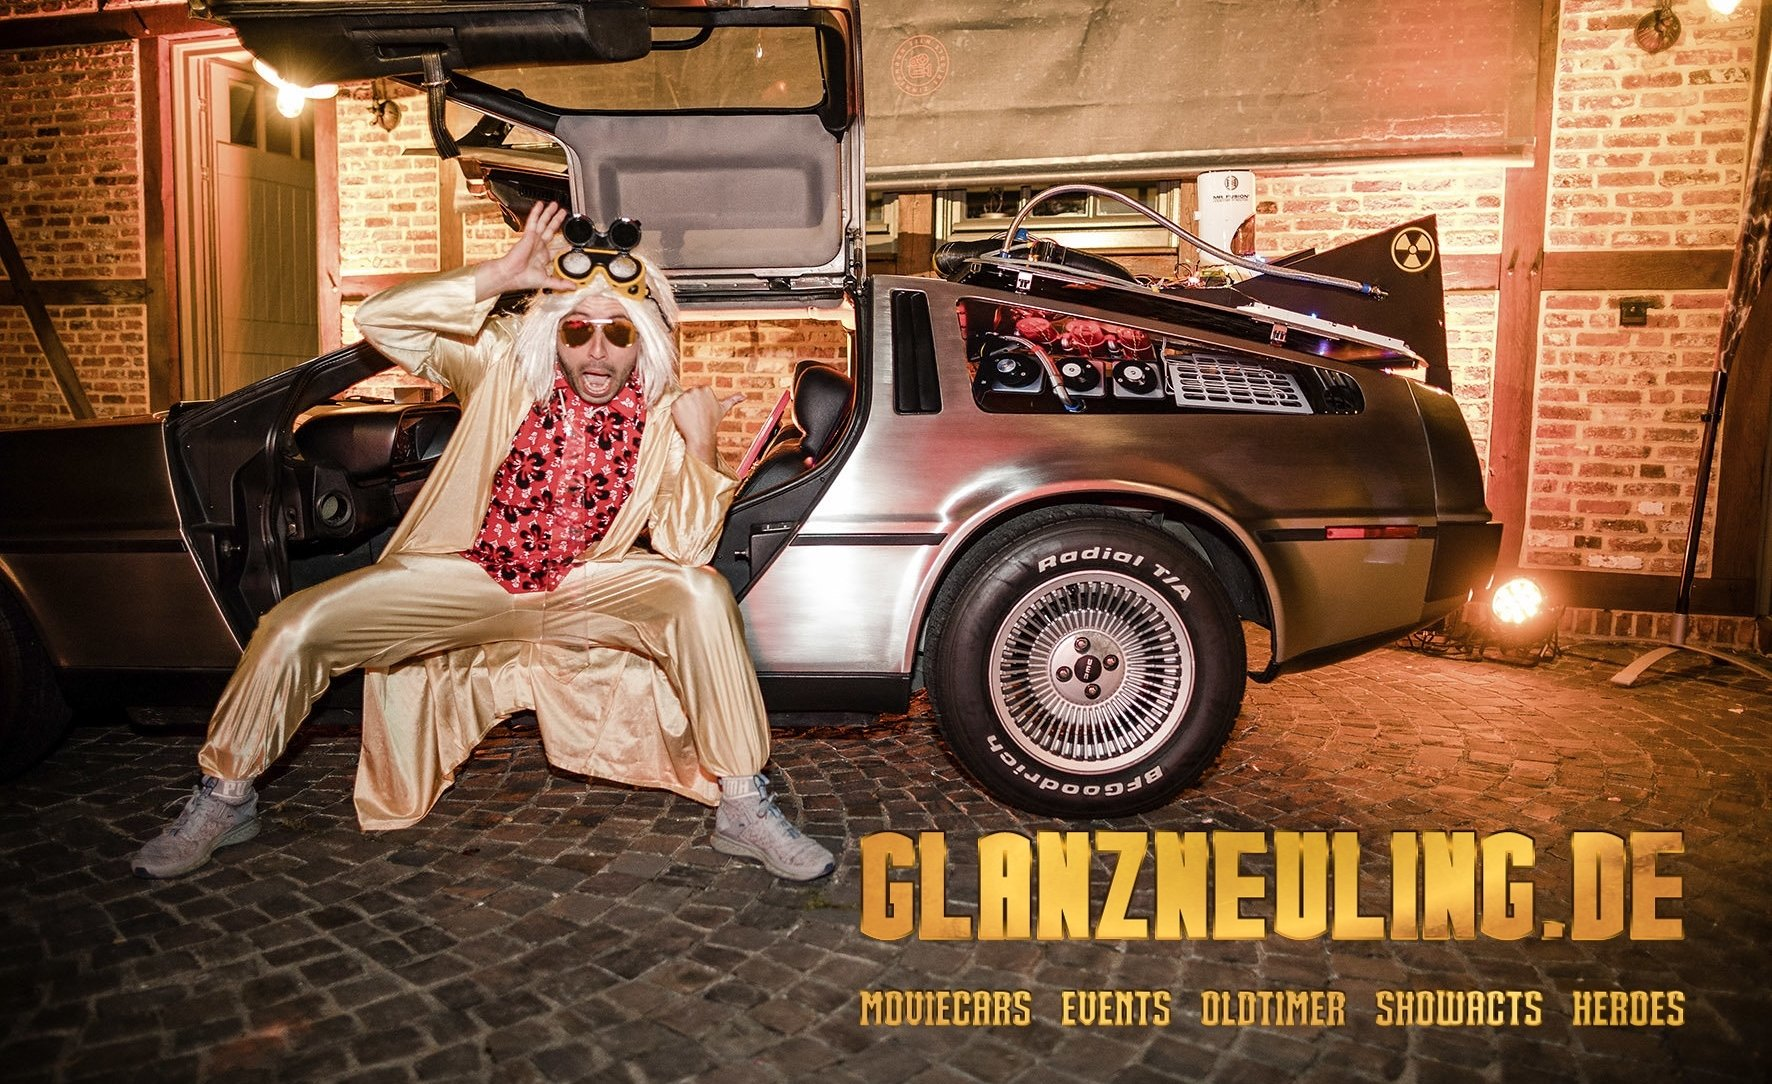 Doc tanzt am Delorean